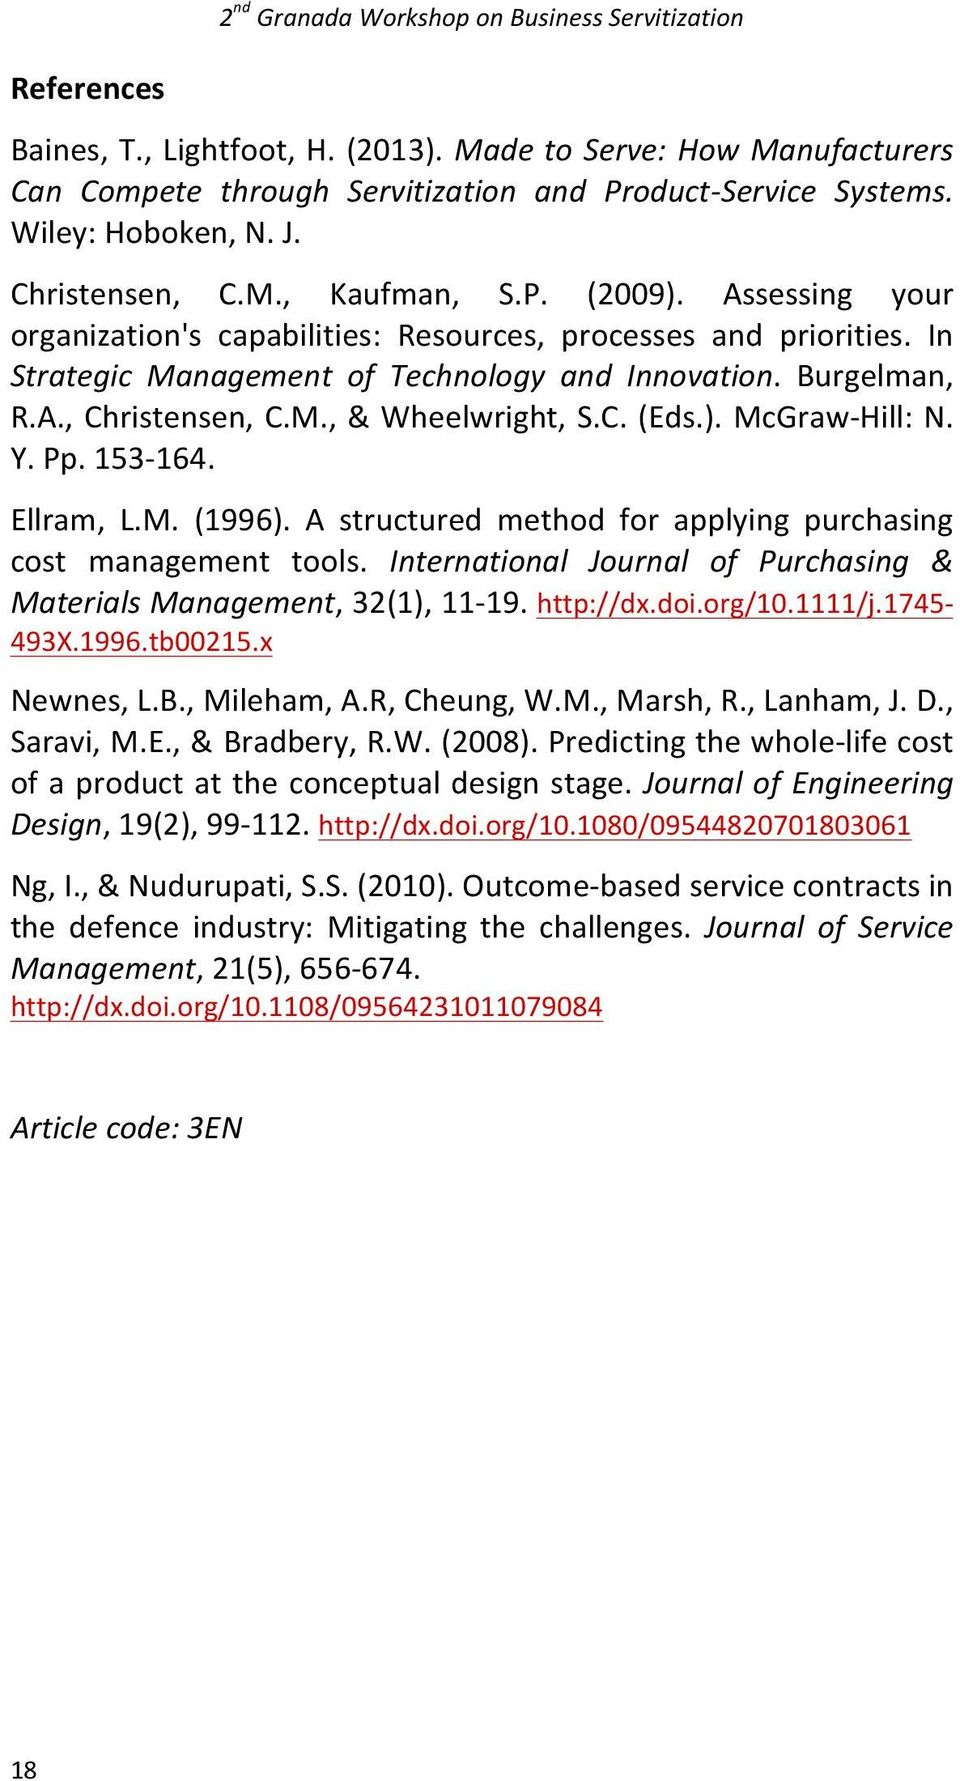 McGraw- Hill: N. Y. Pp. 153-164. Ellram, L.M. (1996). A structured method for applying purchasing cost management tools. International Journal of Purchasing & Materials Management, 32(1), 11-19.